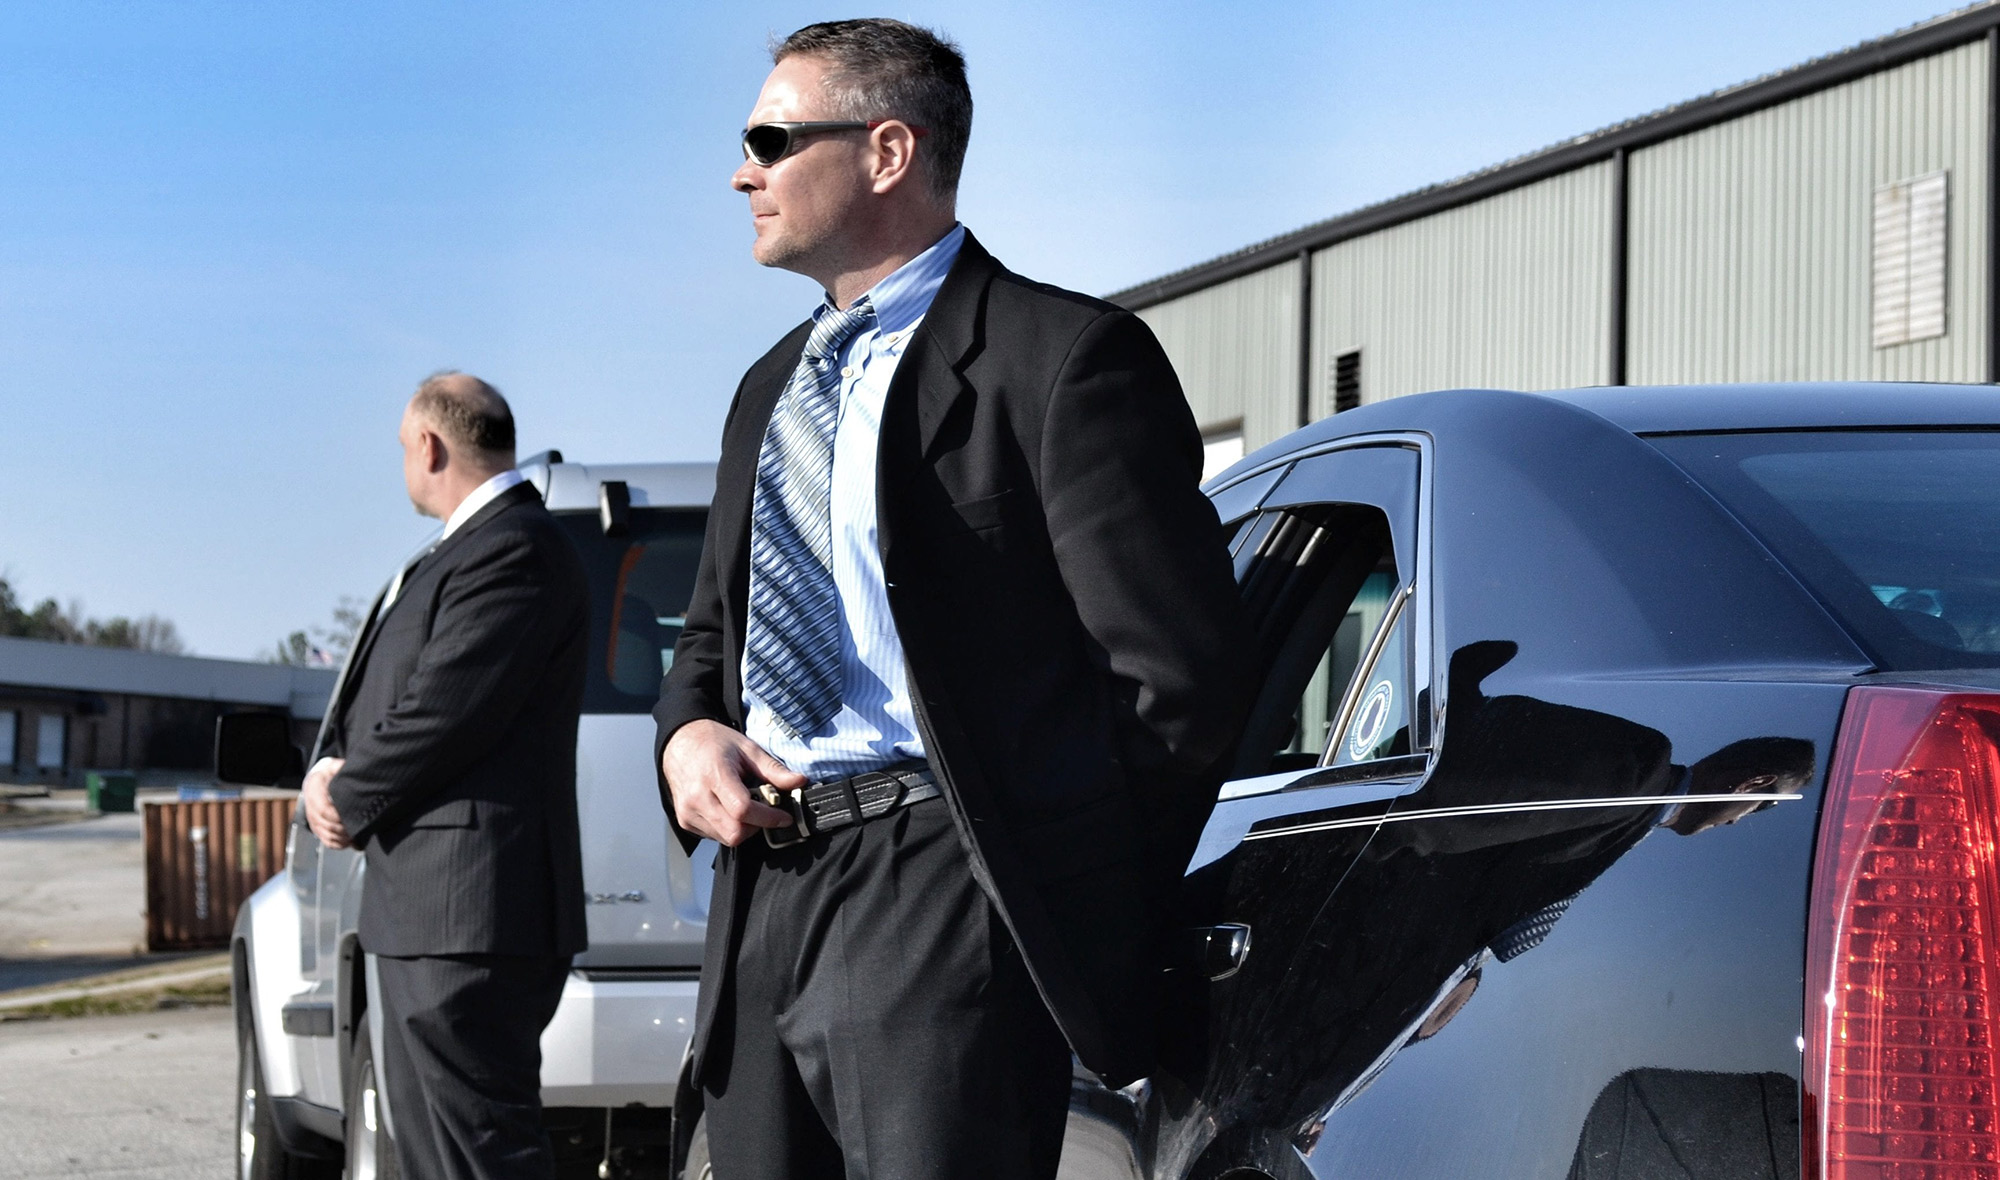 body guard at BlackFox Security & Intelligence